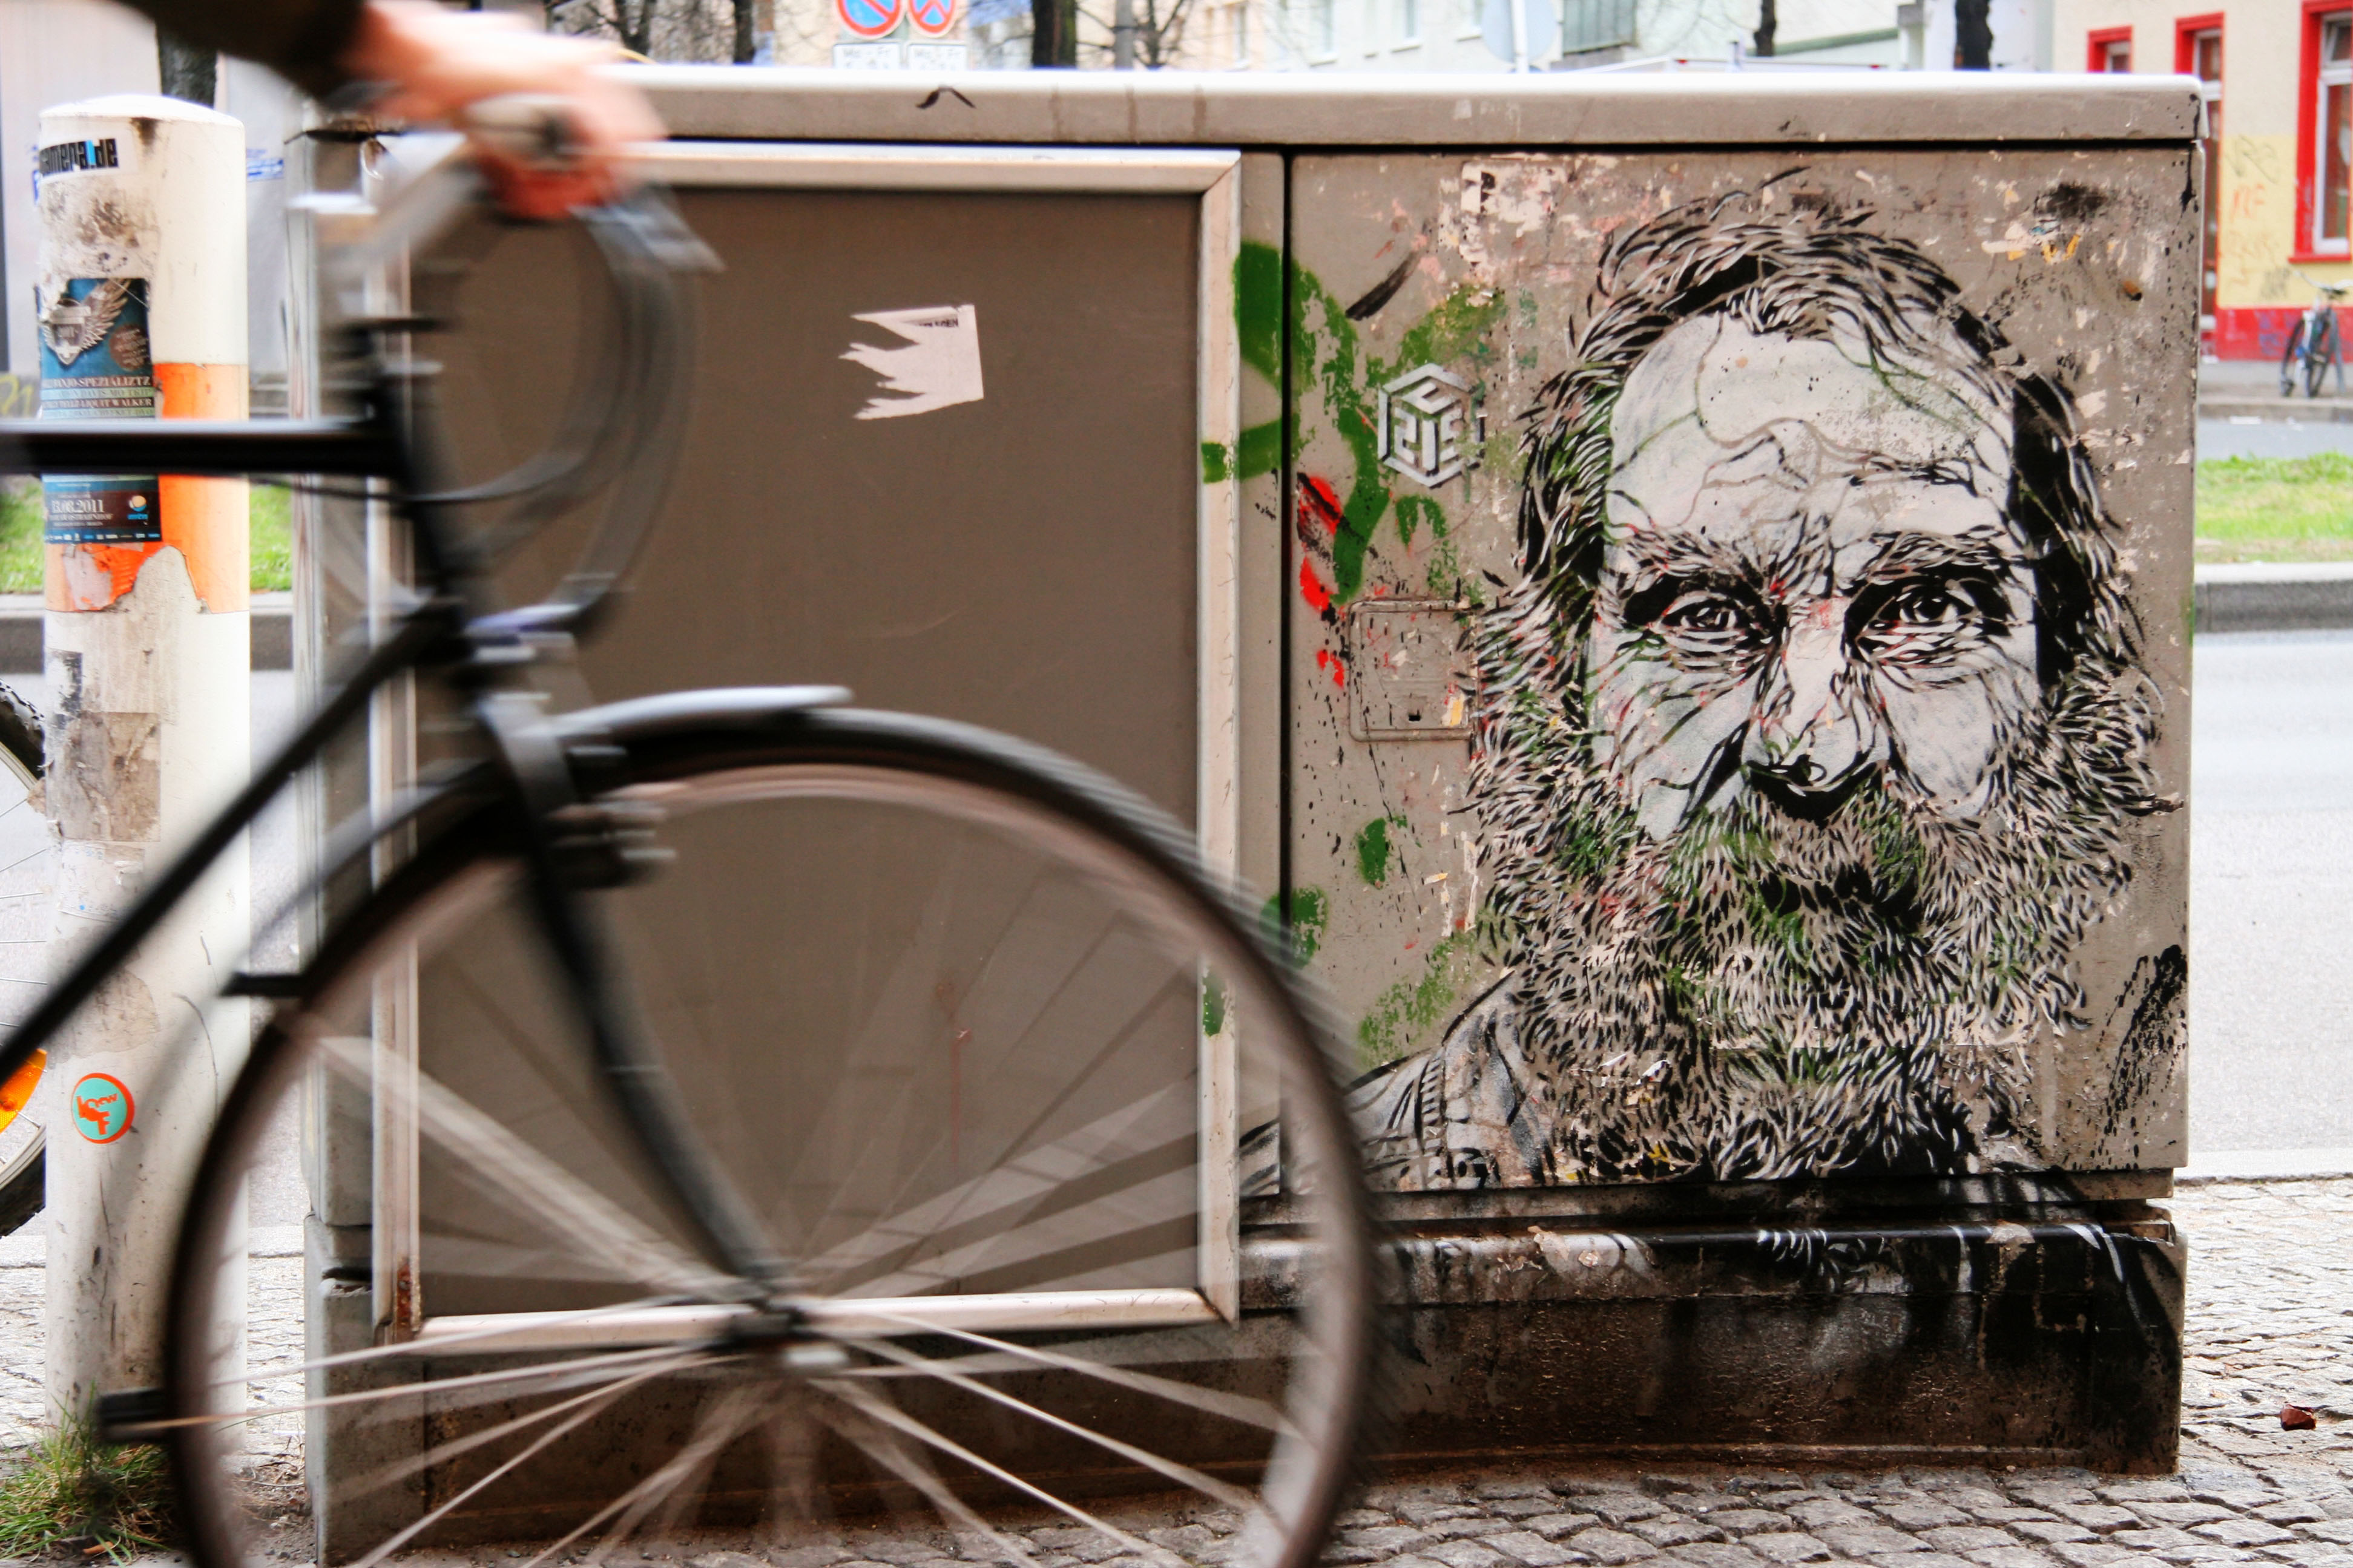 Old Man With A Beard: Street Art by C215 (Christian Guémy) in Berlin